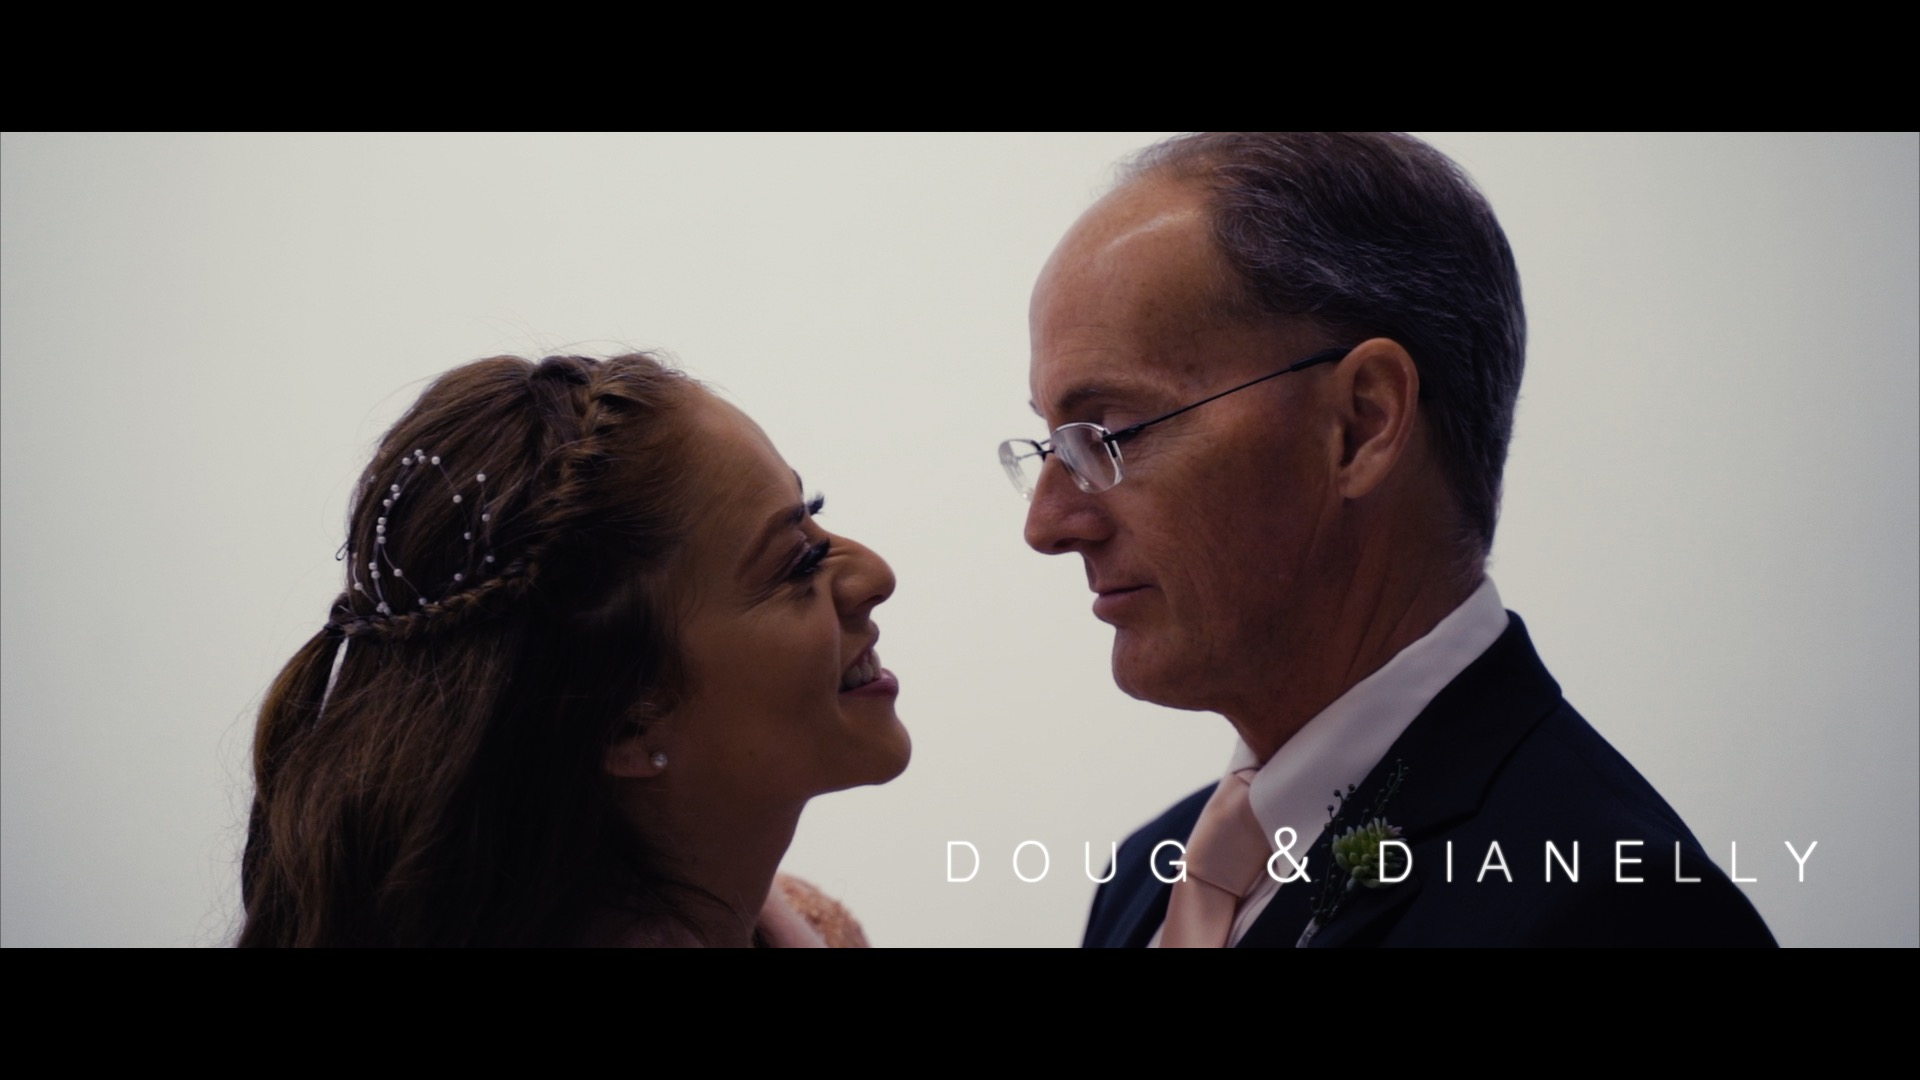 Doug + Dianelly | Los Angeles, California | Tiger Lab Productions